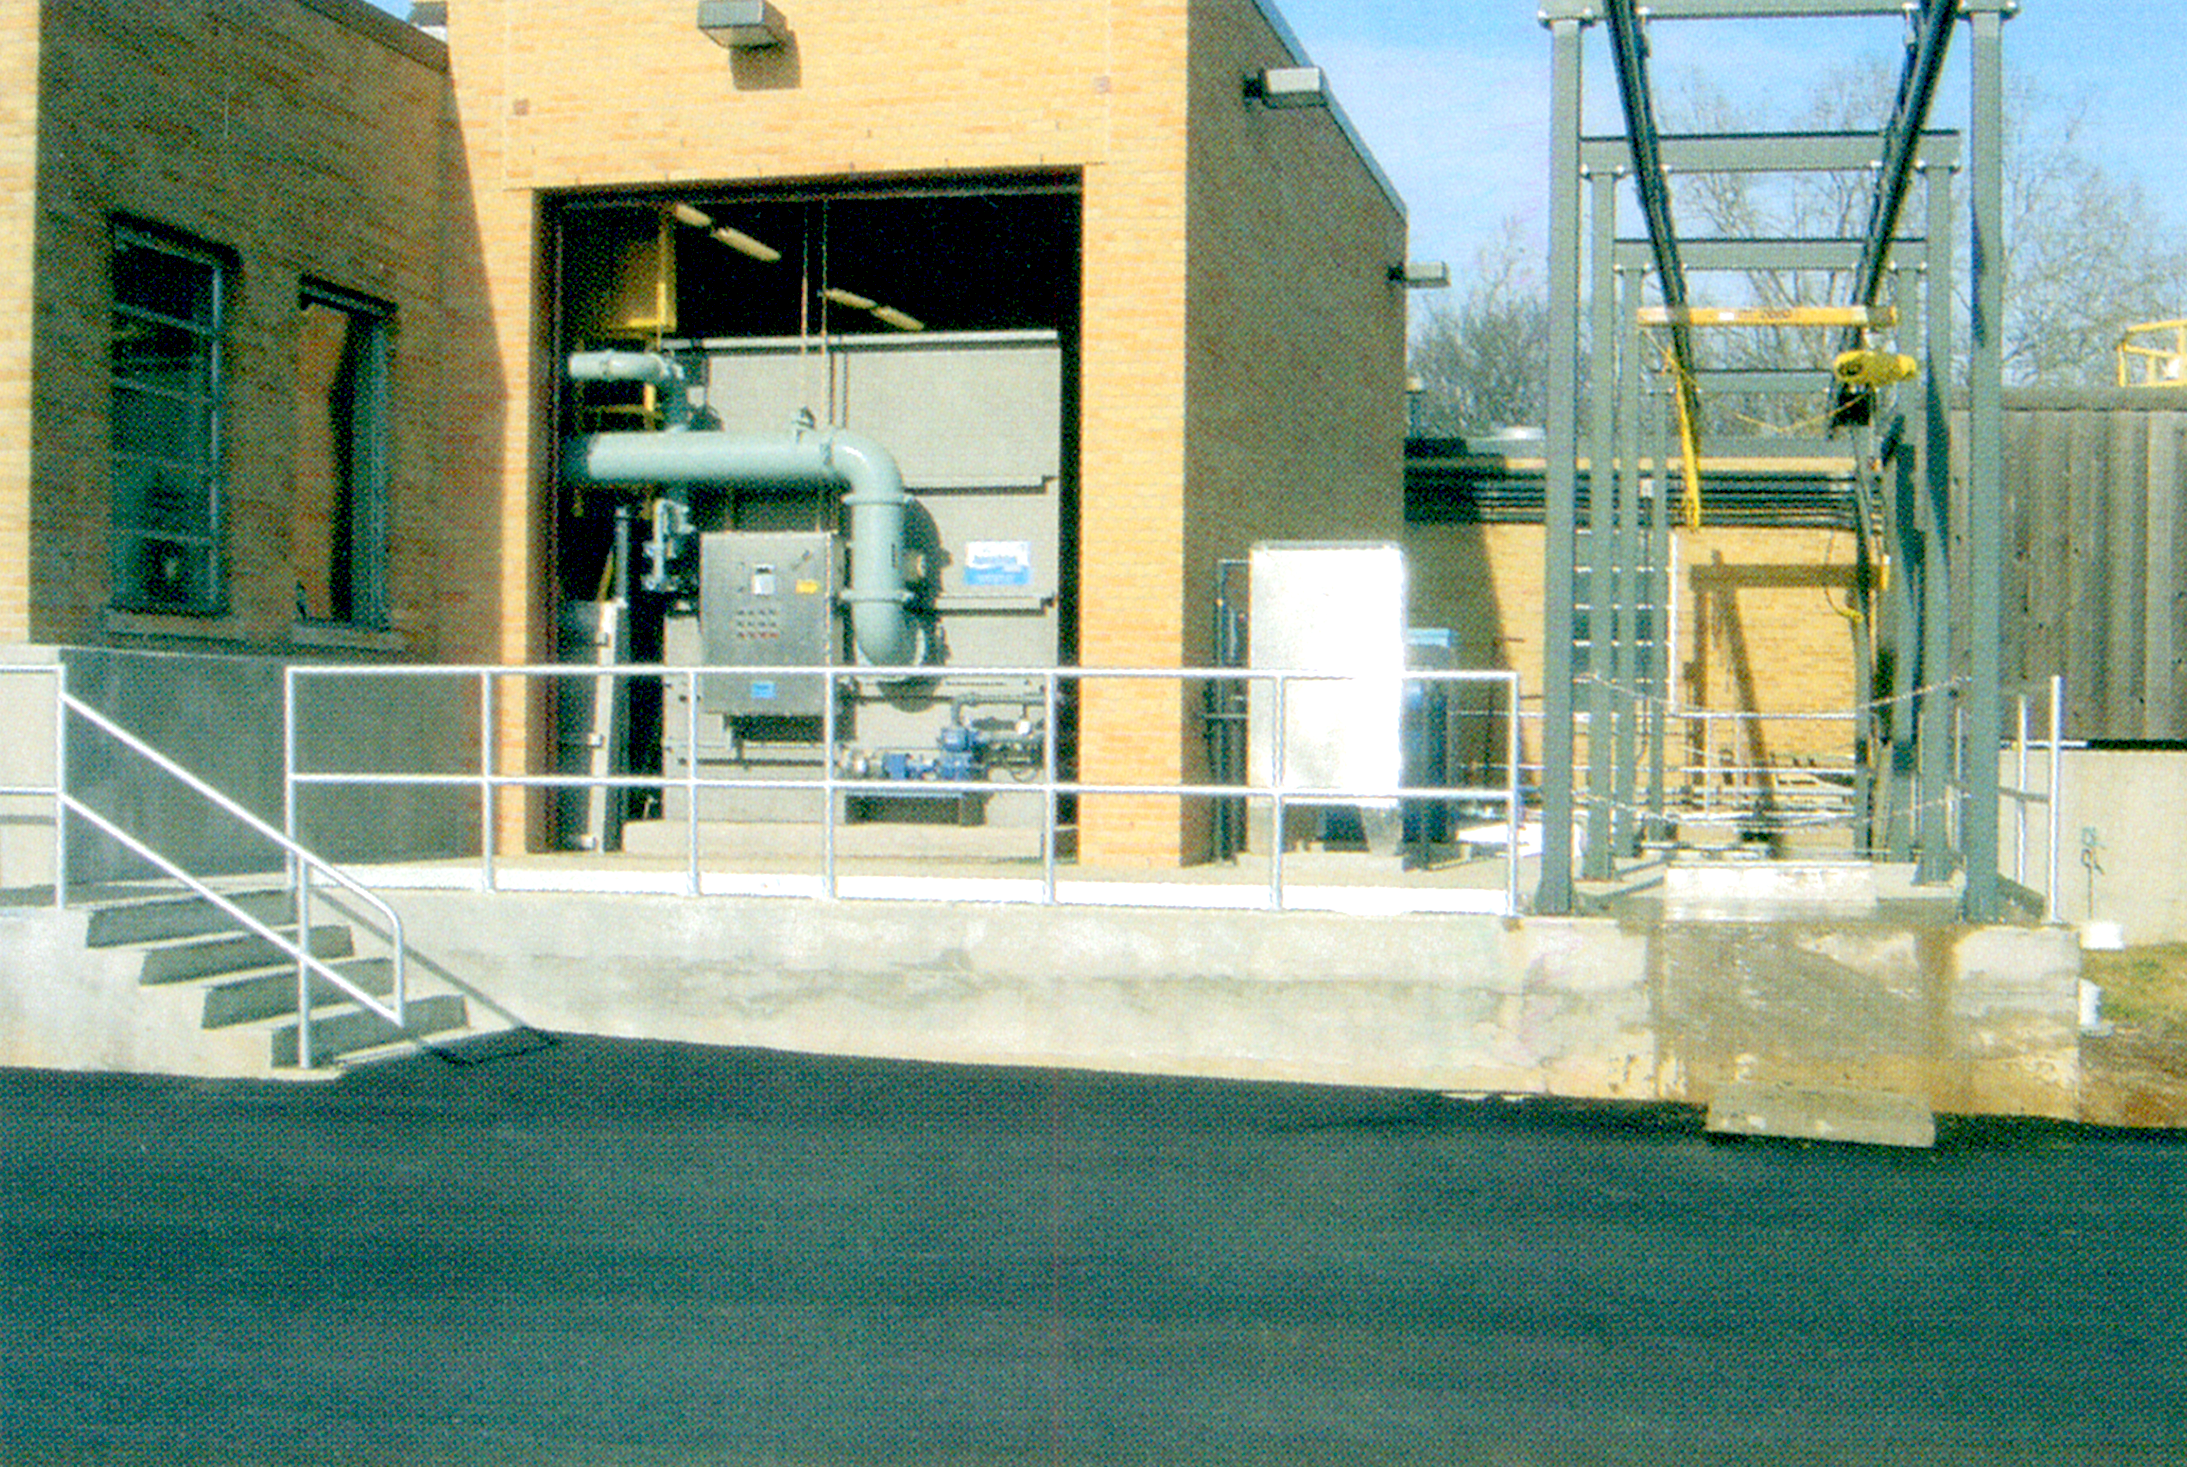 The Wastewater Treatment Process Coldwater Mi Piping Instrumentation Diagram Water Plant Pipes At Facility Opens In New Window